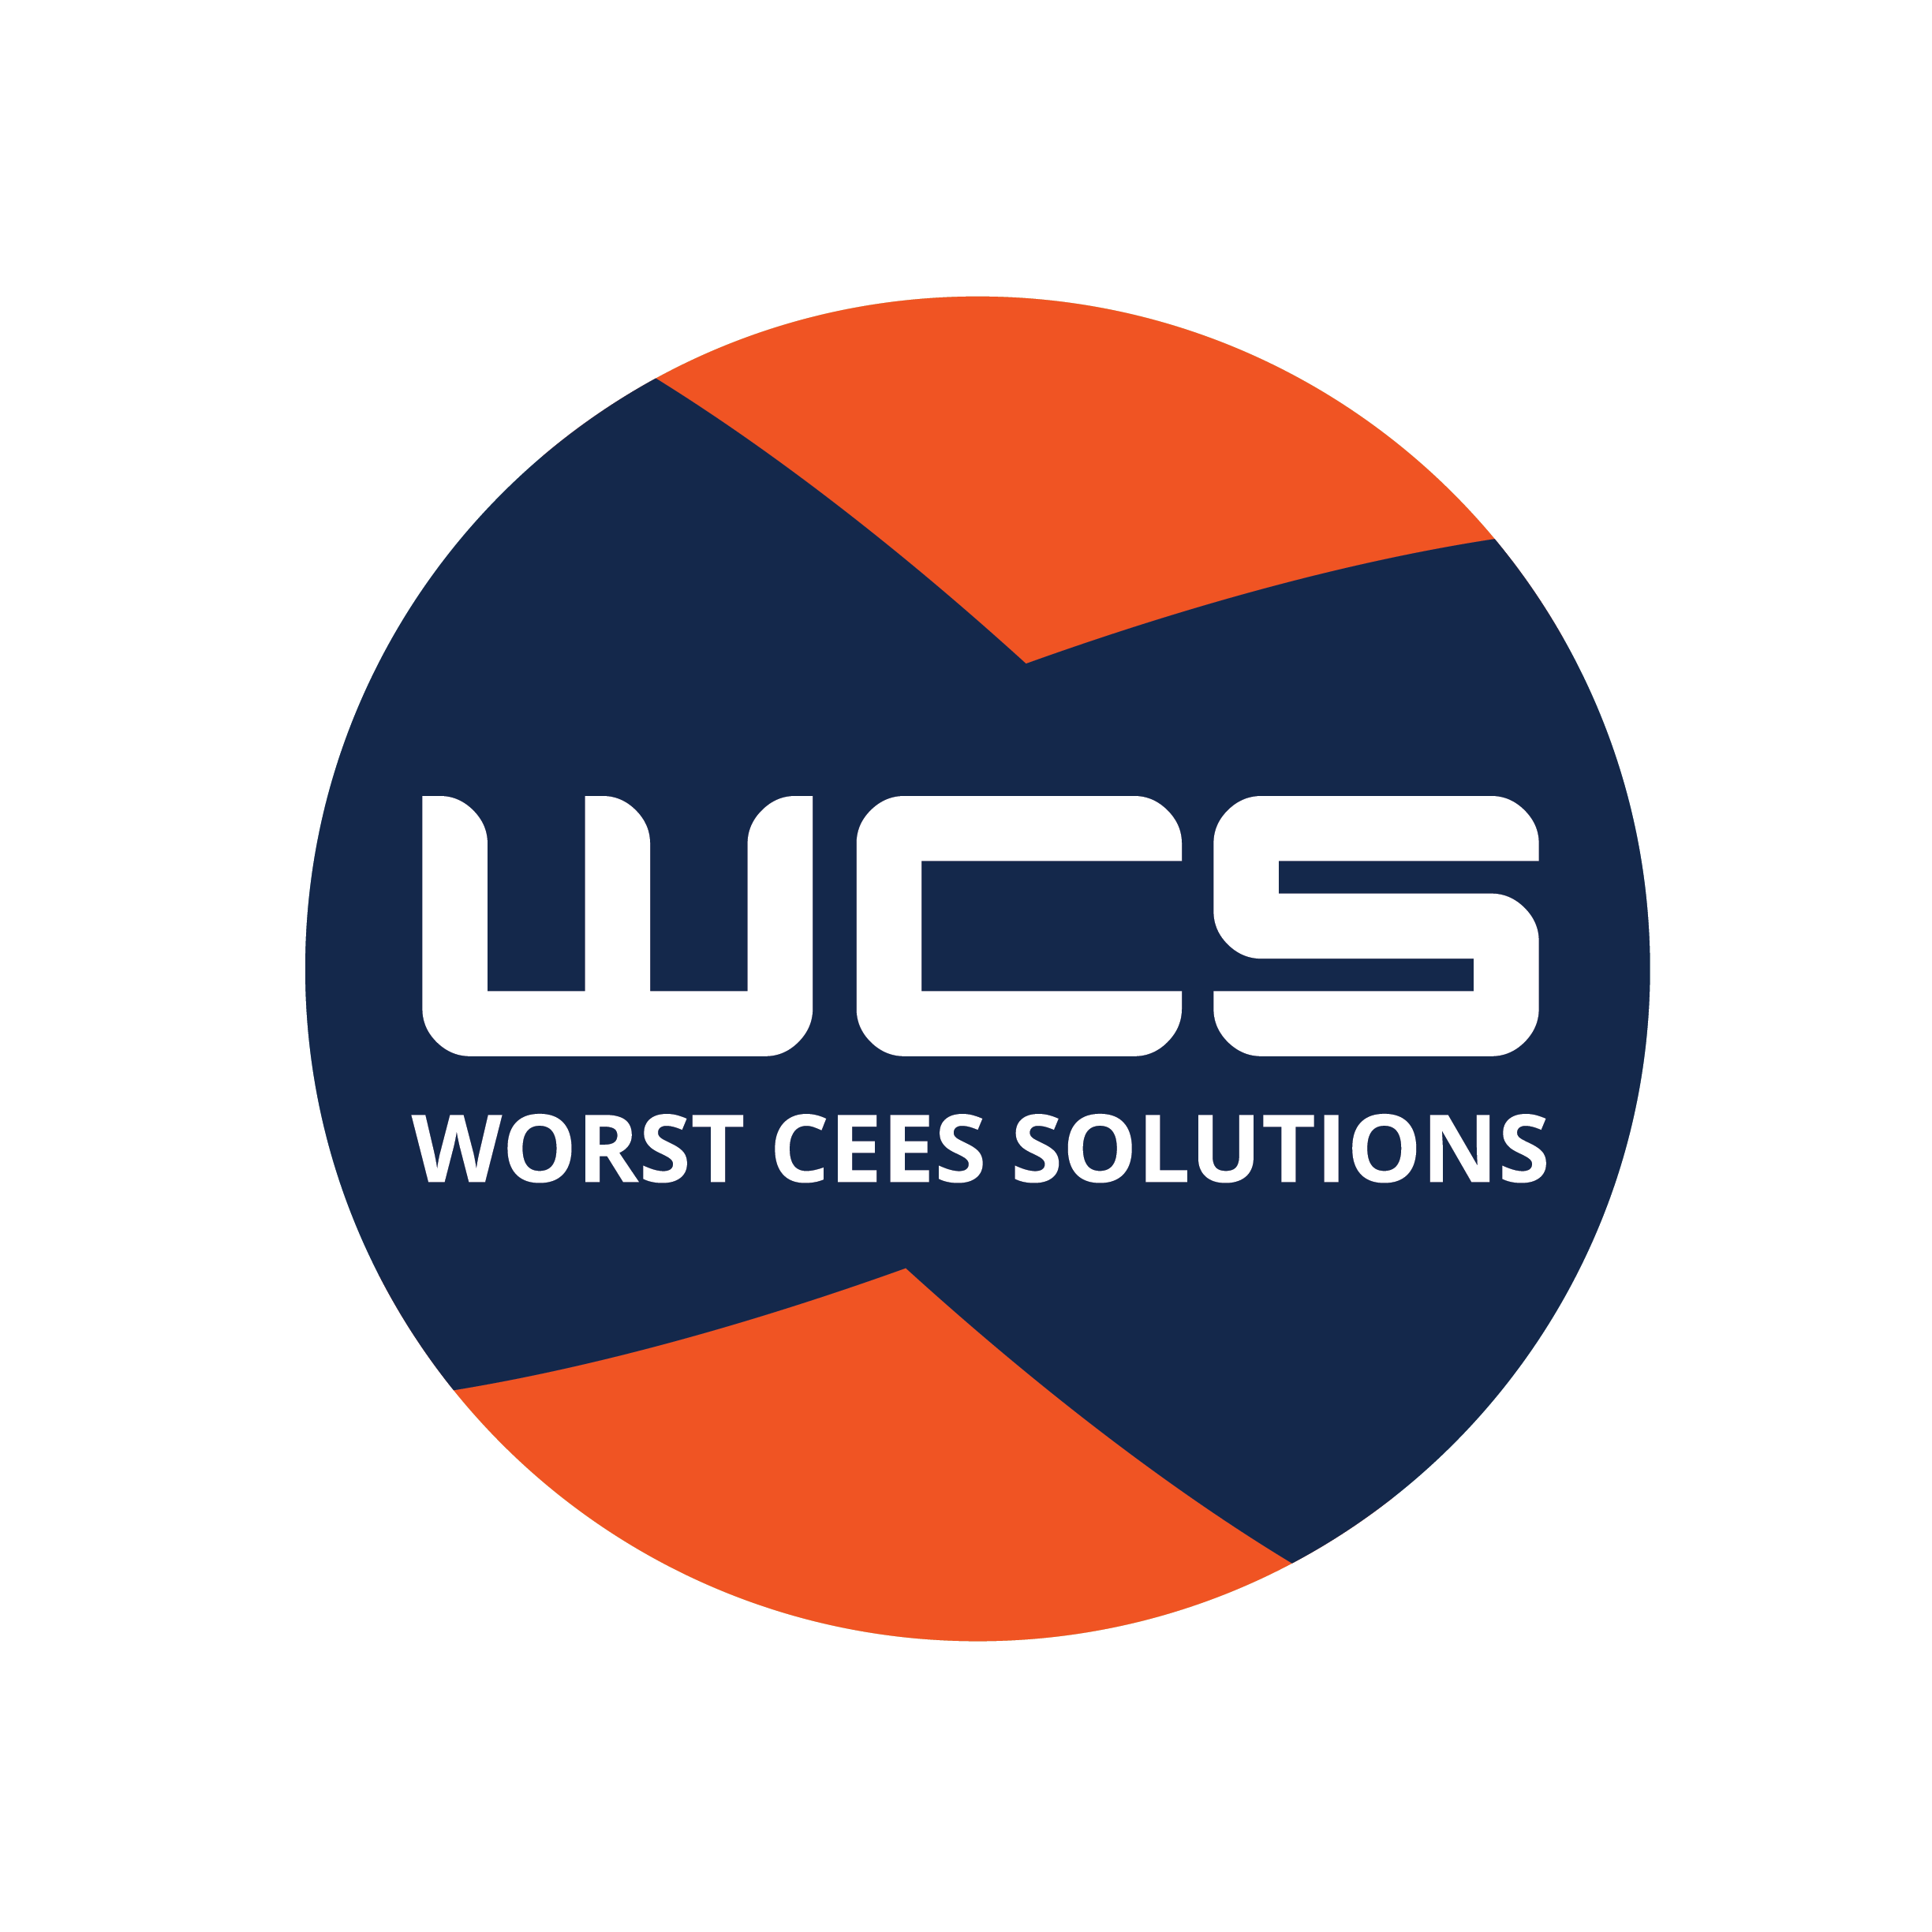 Worst Cees Solutions